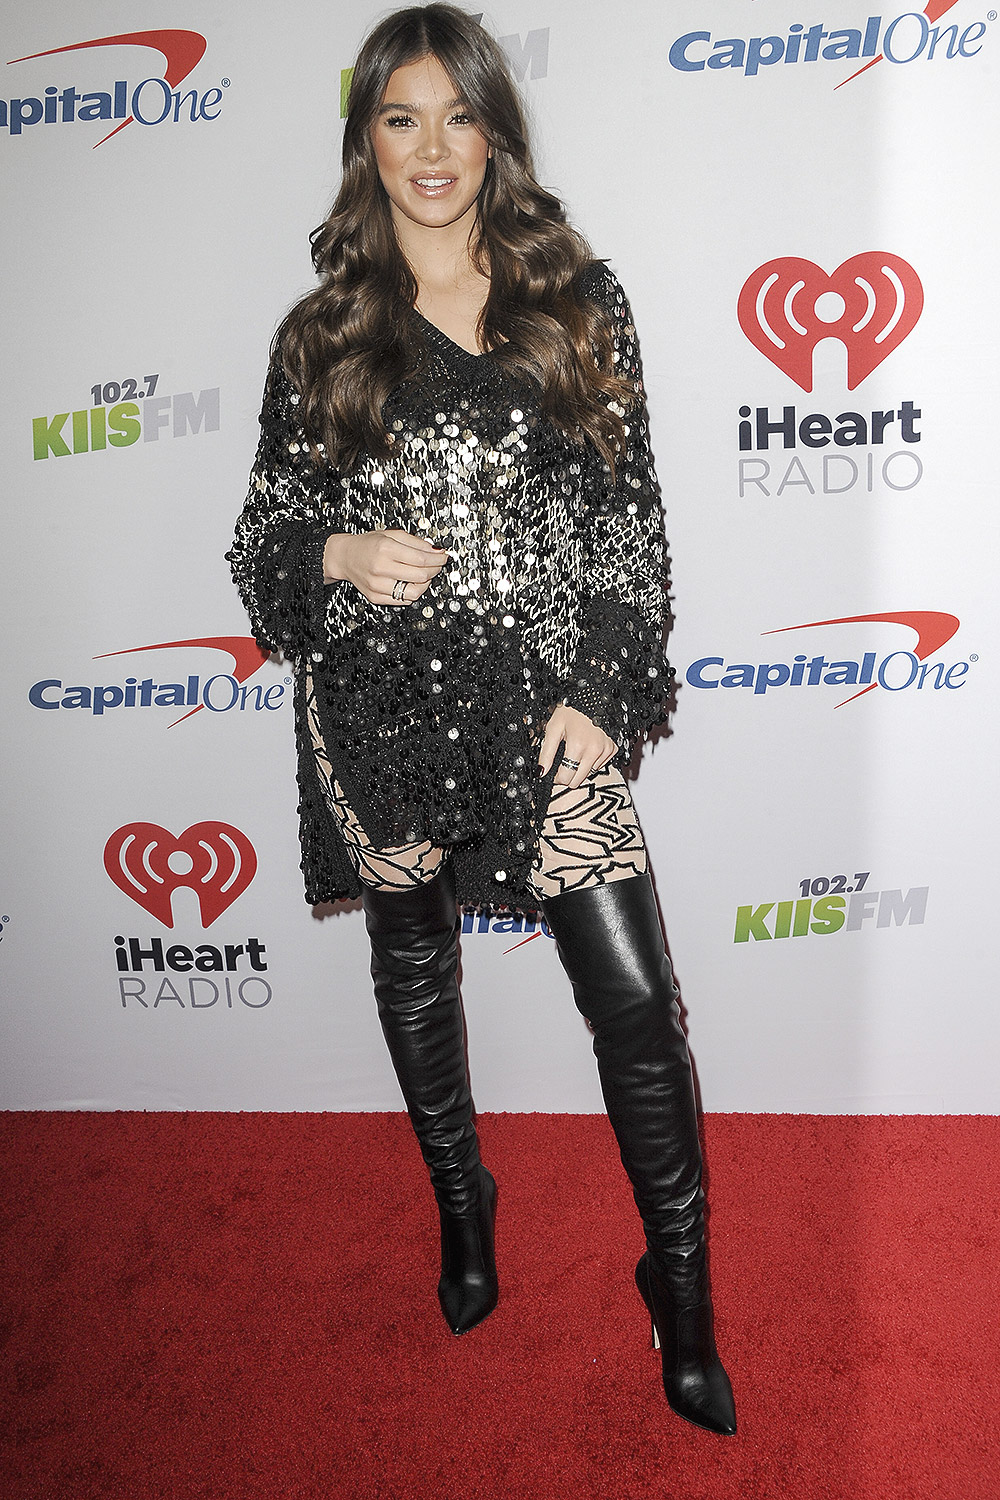 Hailee Steinfeld attends The KIIS FM Jingle Ball